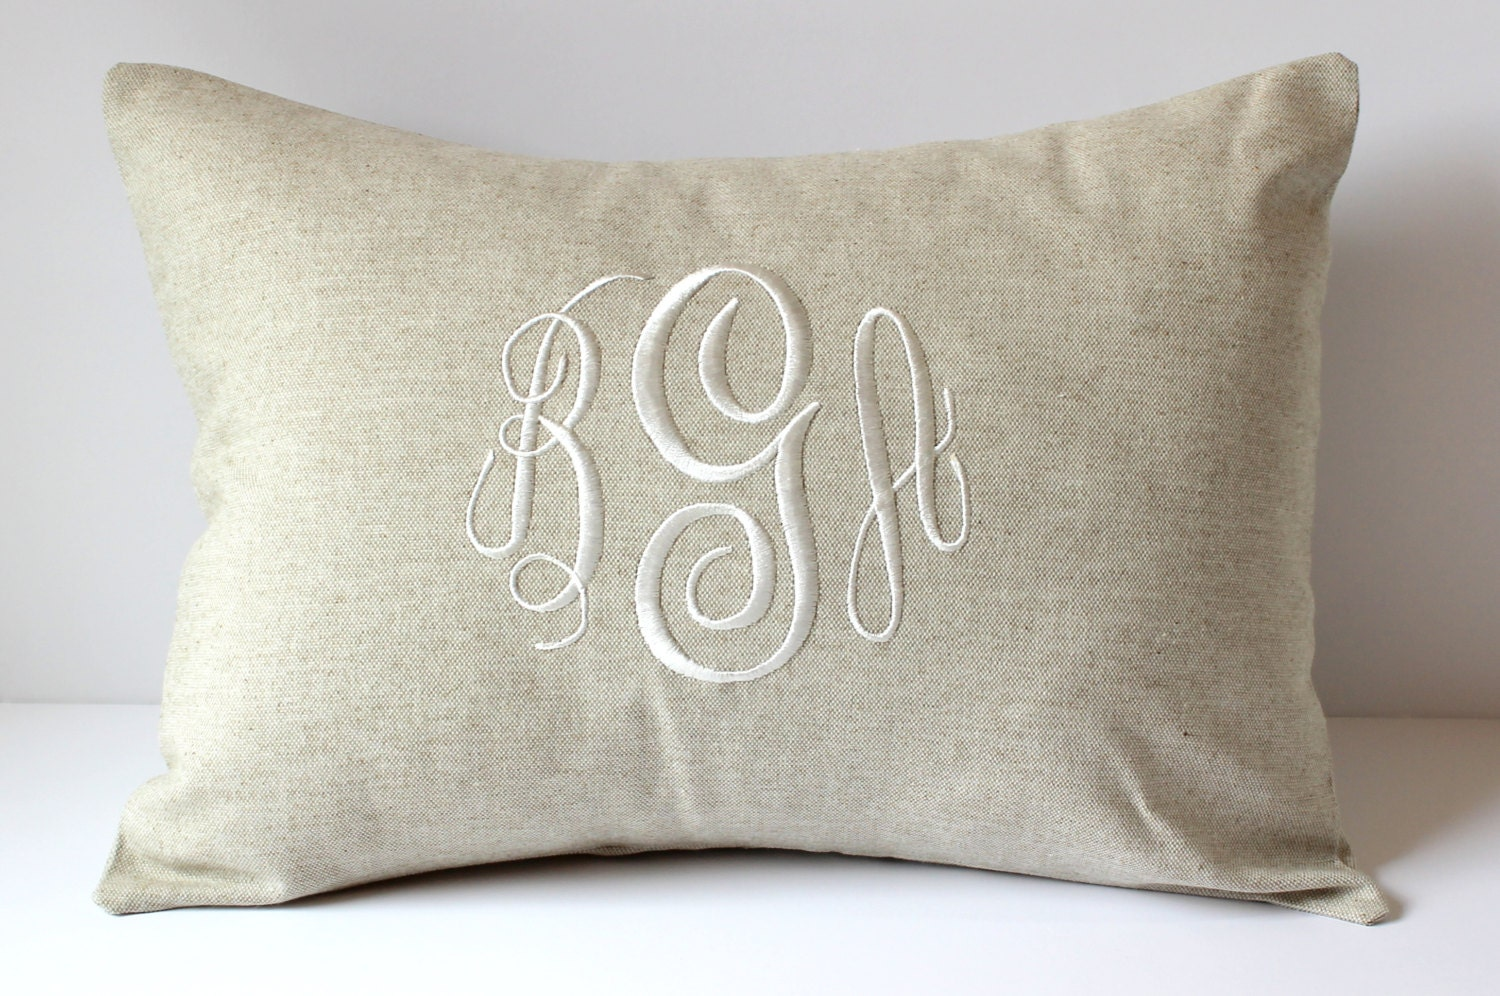 WEDDING Monogram Pillow Cover. Natural LINEN Decorative Throw